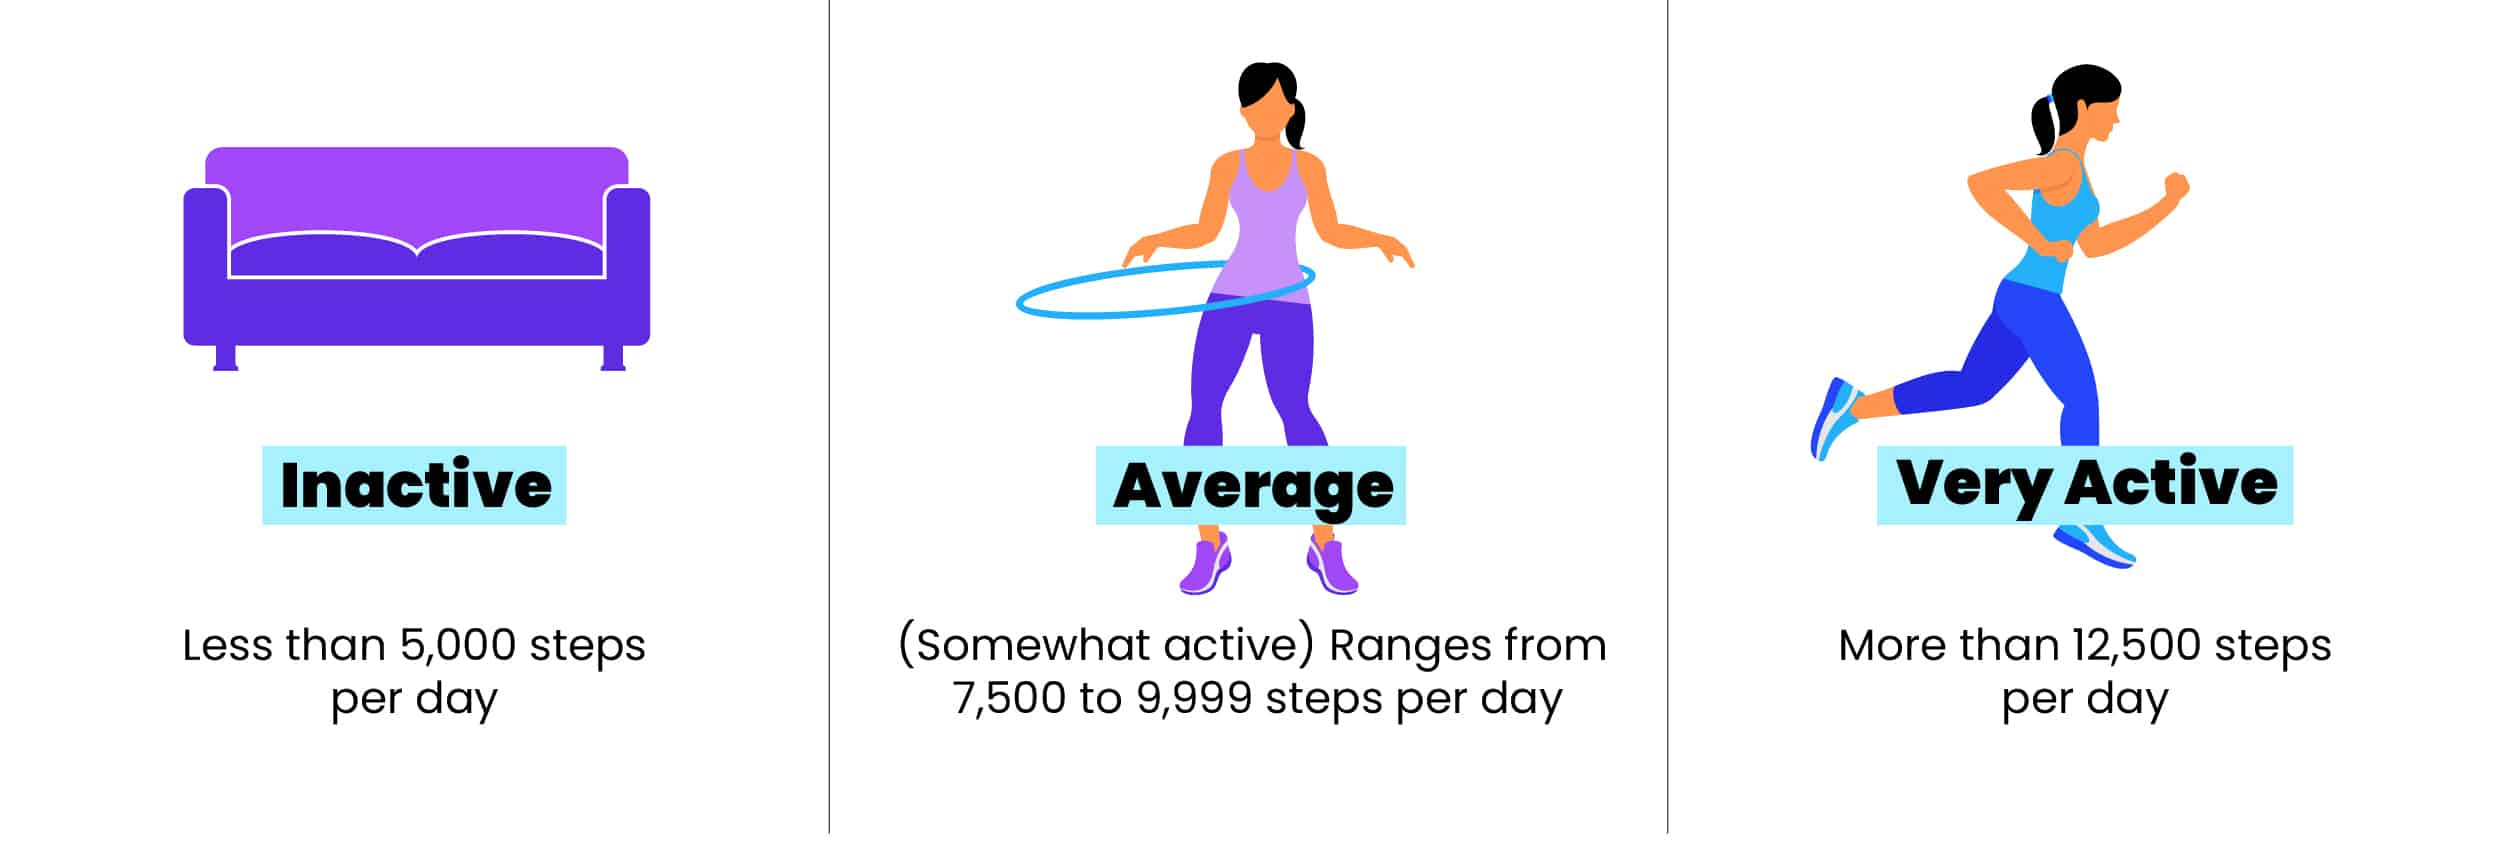 inactive, average, and very active graphic (based on step count)